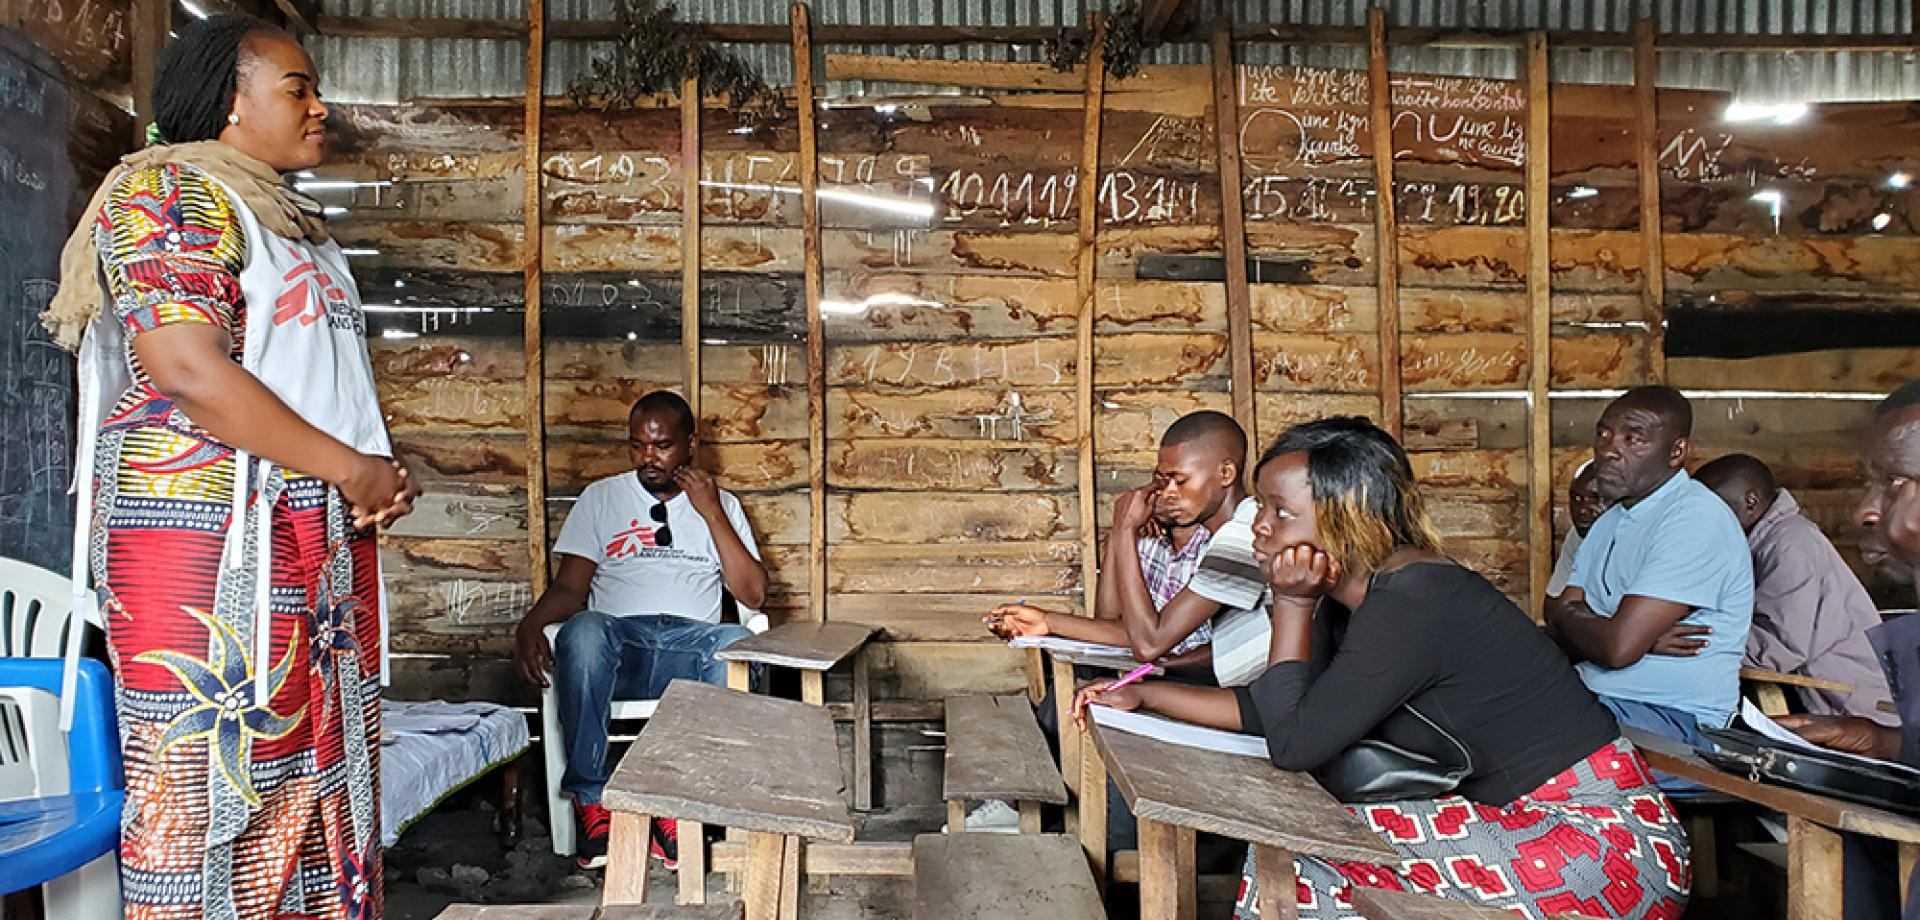 An MSF staff member hosts a COVID-19 health promotion training and information session with a group of volunteer community healthcare workers in the village of Kiziba, North Kivu province, DRC.